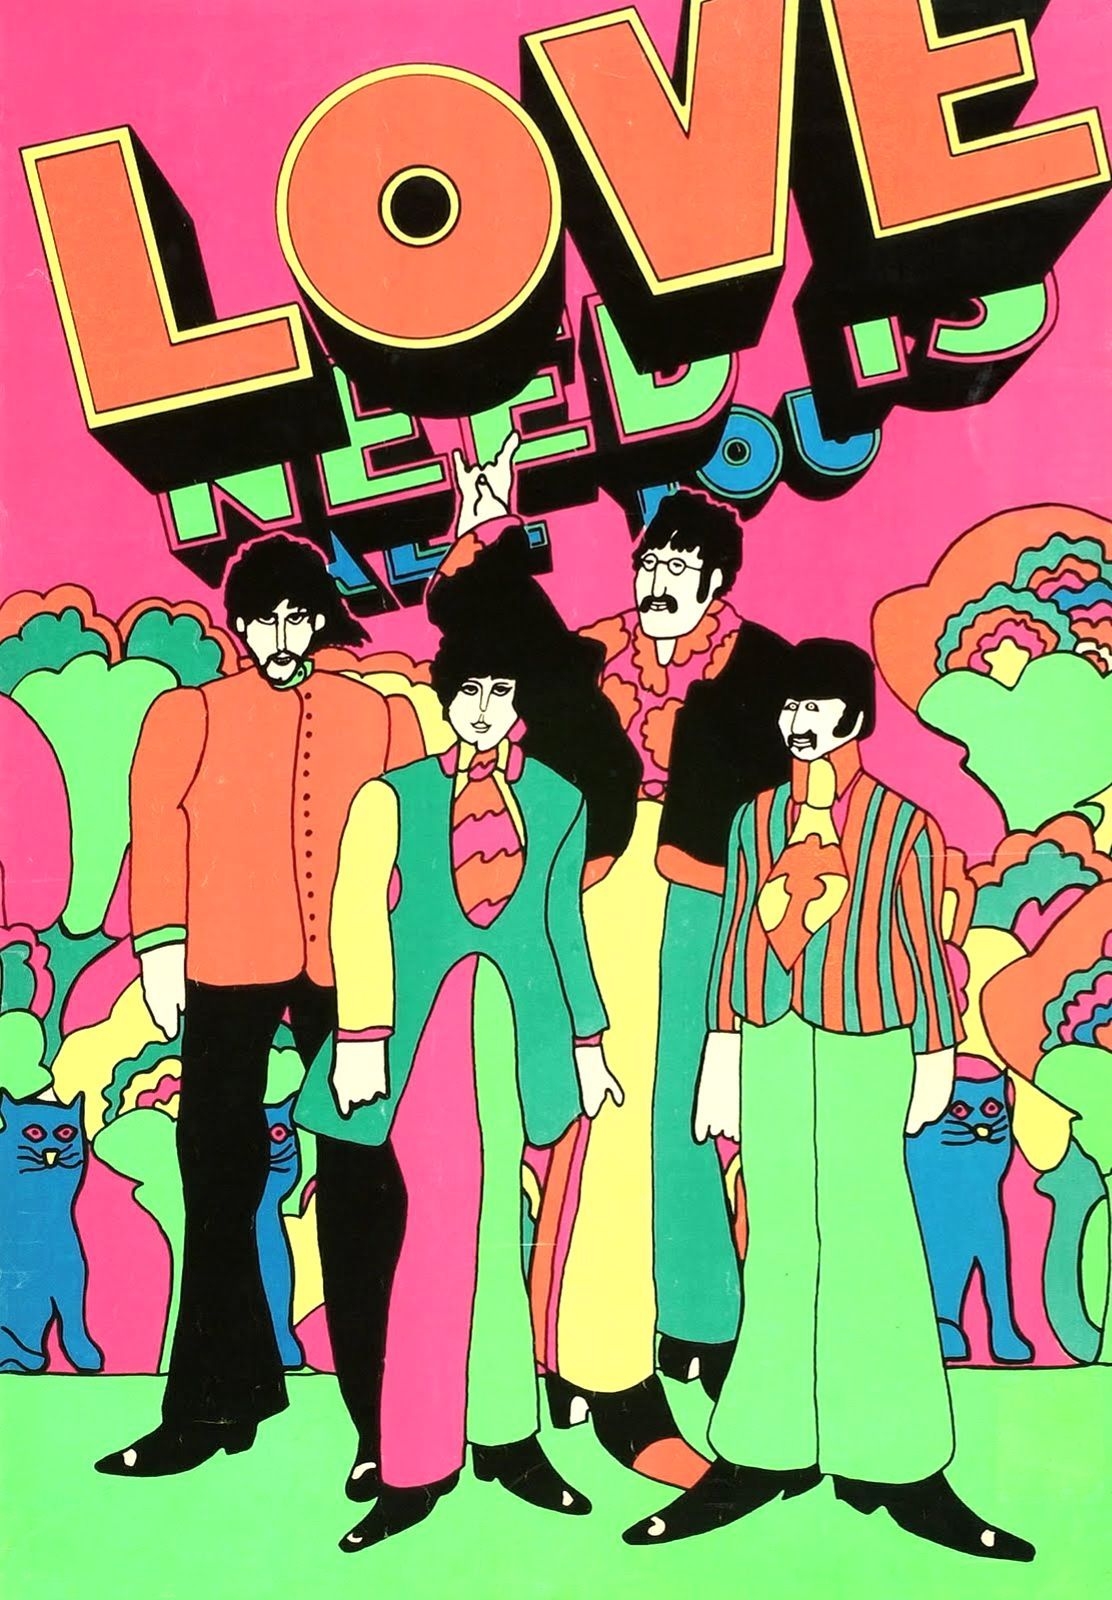 60s Art - The Beatles - Yellow Submarine by Peter Max ... Peter Max 60s